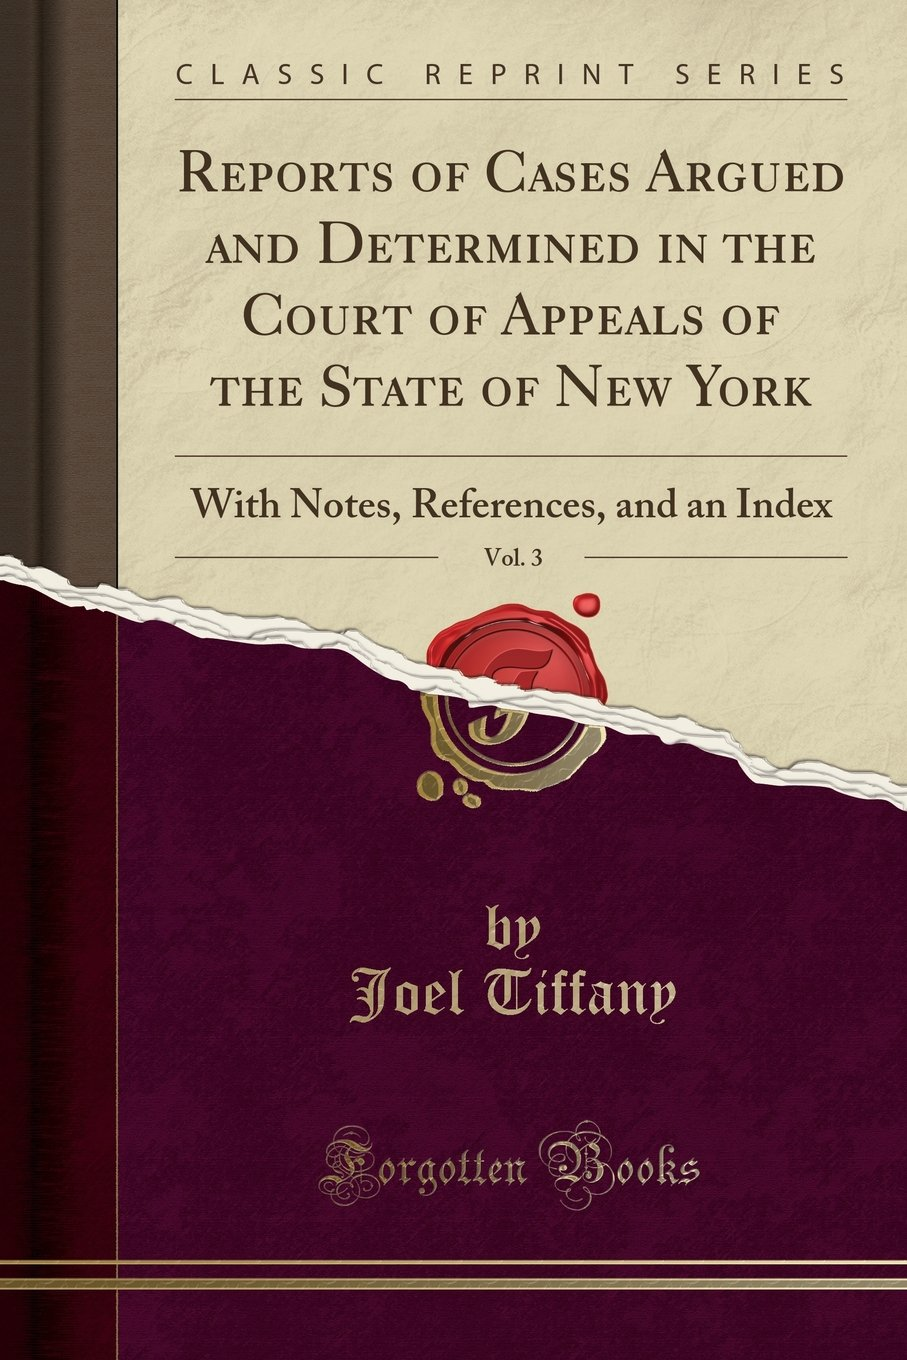 Download Reports of Cases Argued and Determined in the Court of Appeals of the State of New York, Vol. 3: With Notes, References, and an Index (Classic Reprint) PDF